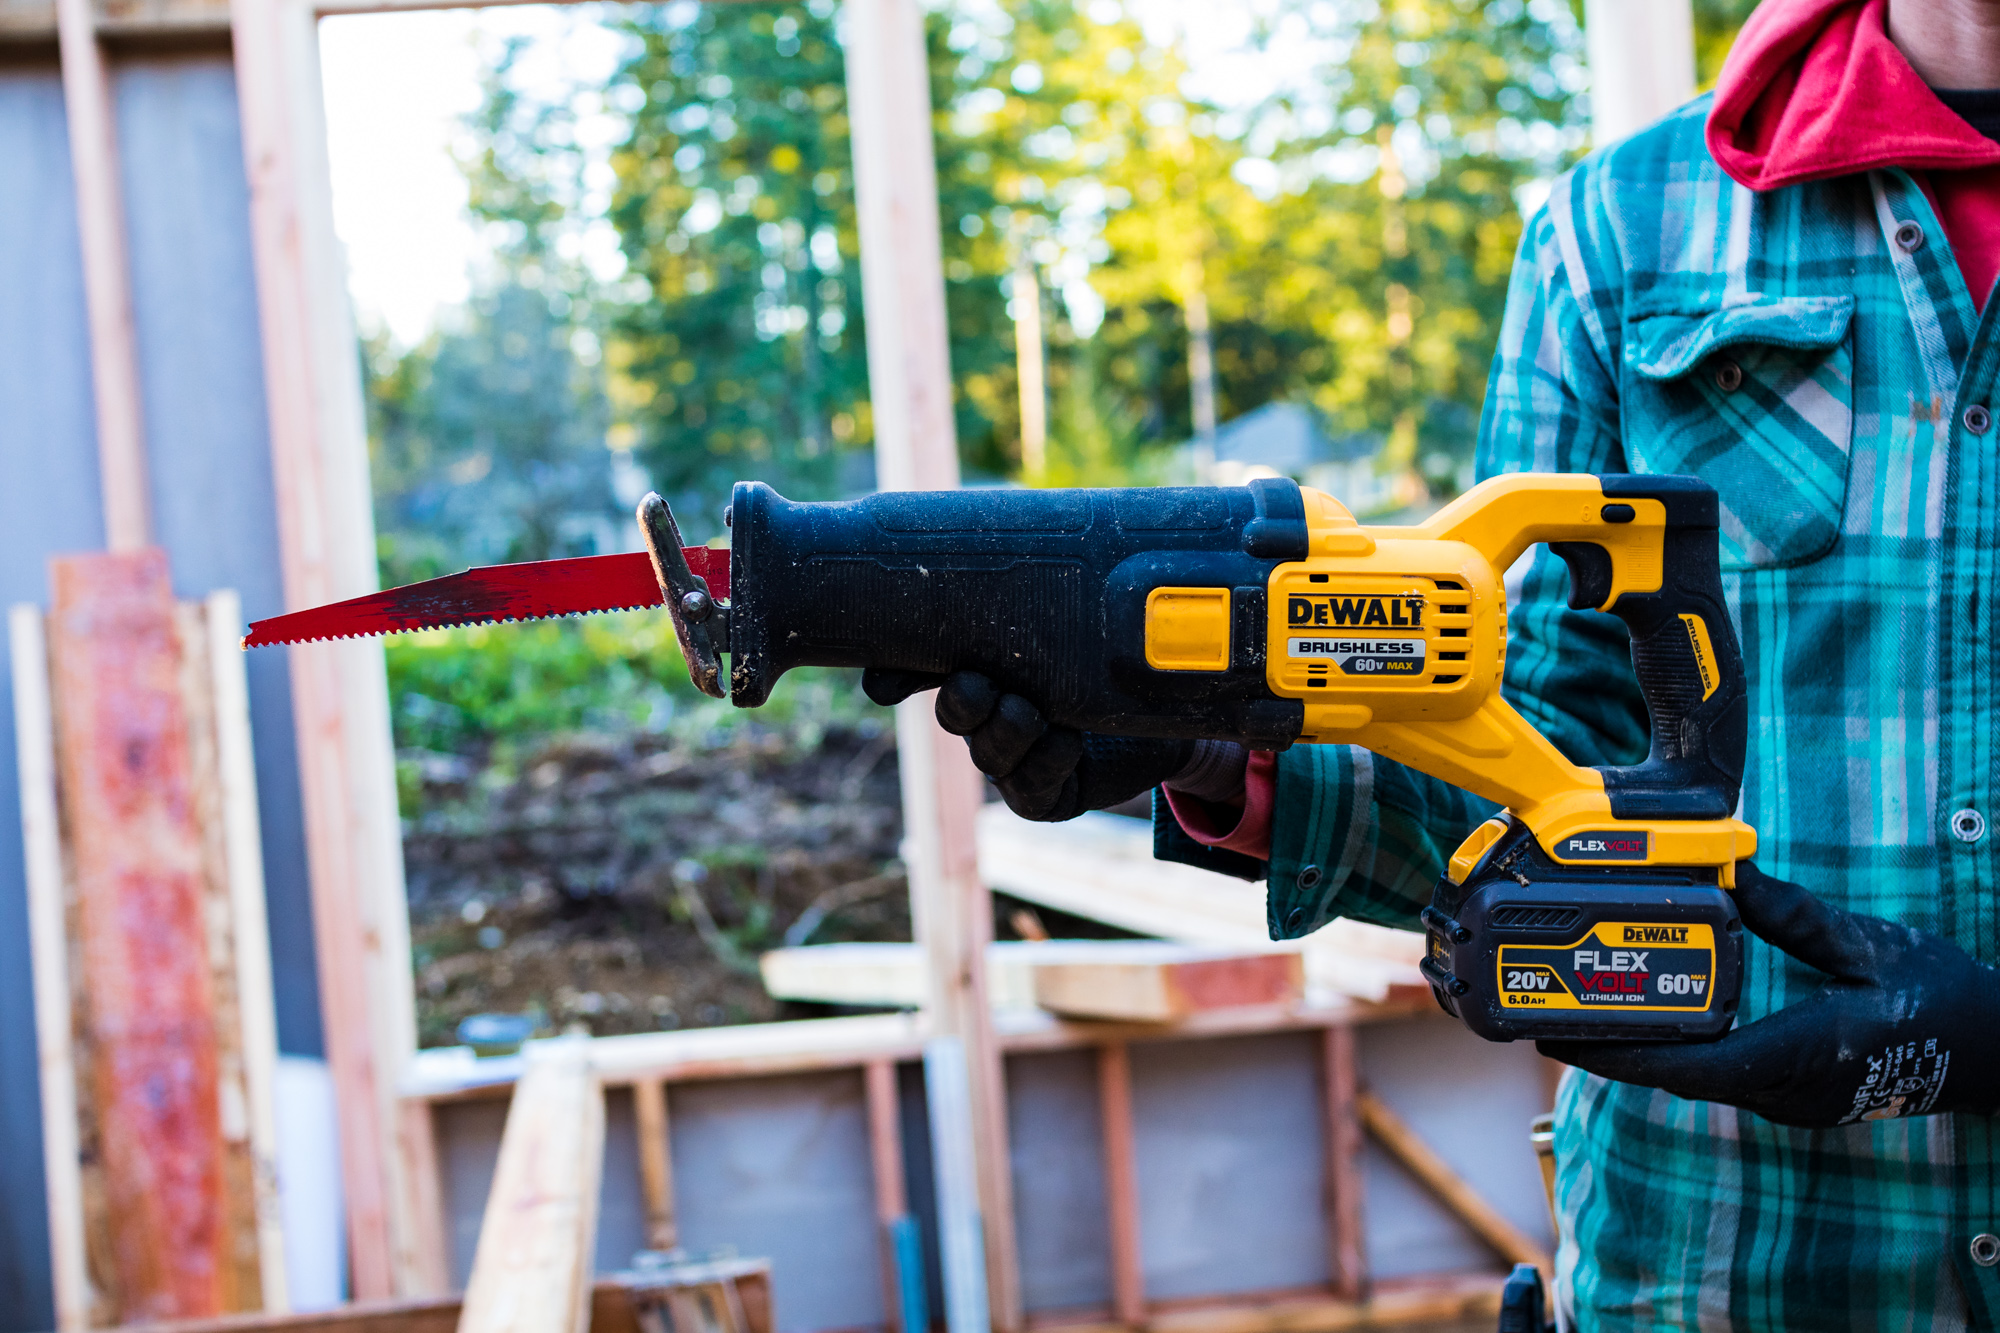 Dewalt cordless flexvolt recip saw tools of the trade cordless dewalt cordless flexvolt recip saw tools of the trade cordless tools saws tool tests dewalt greentooth Gallery